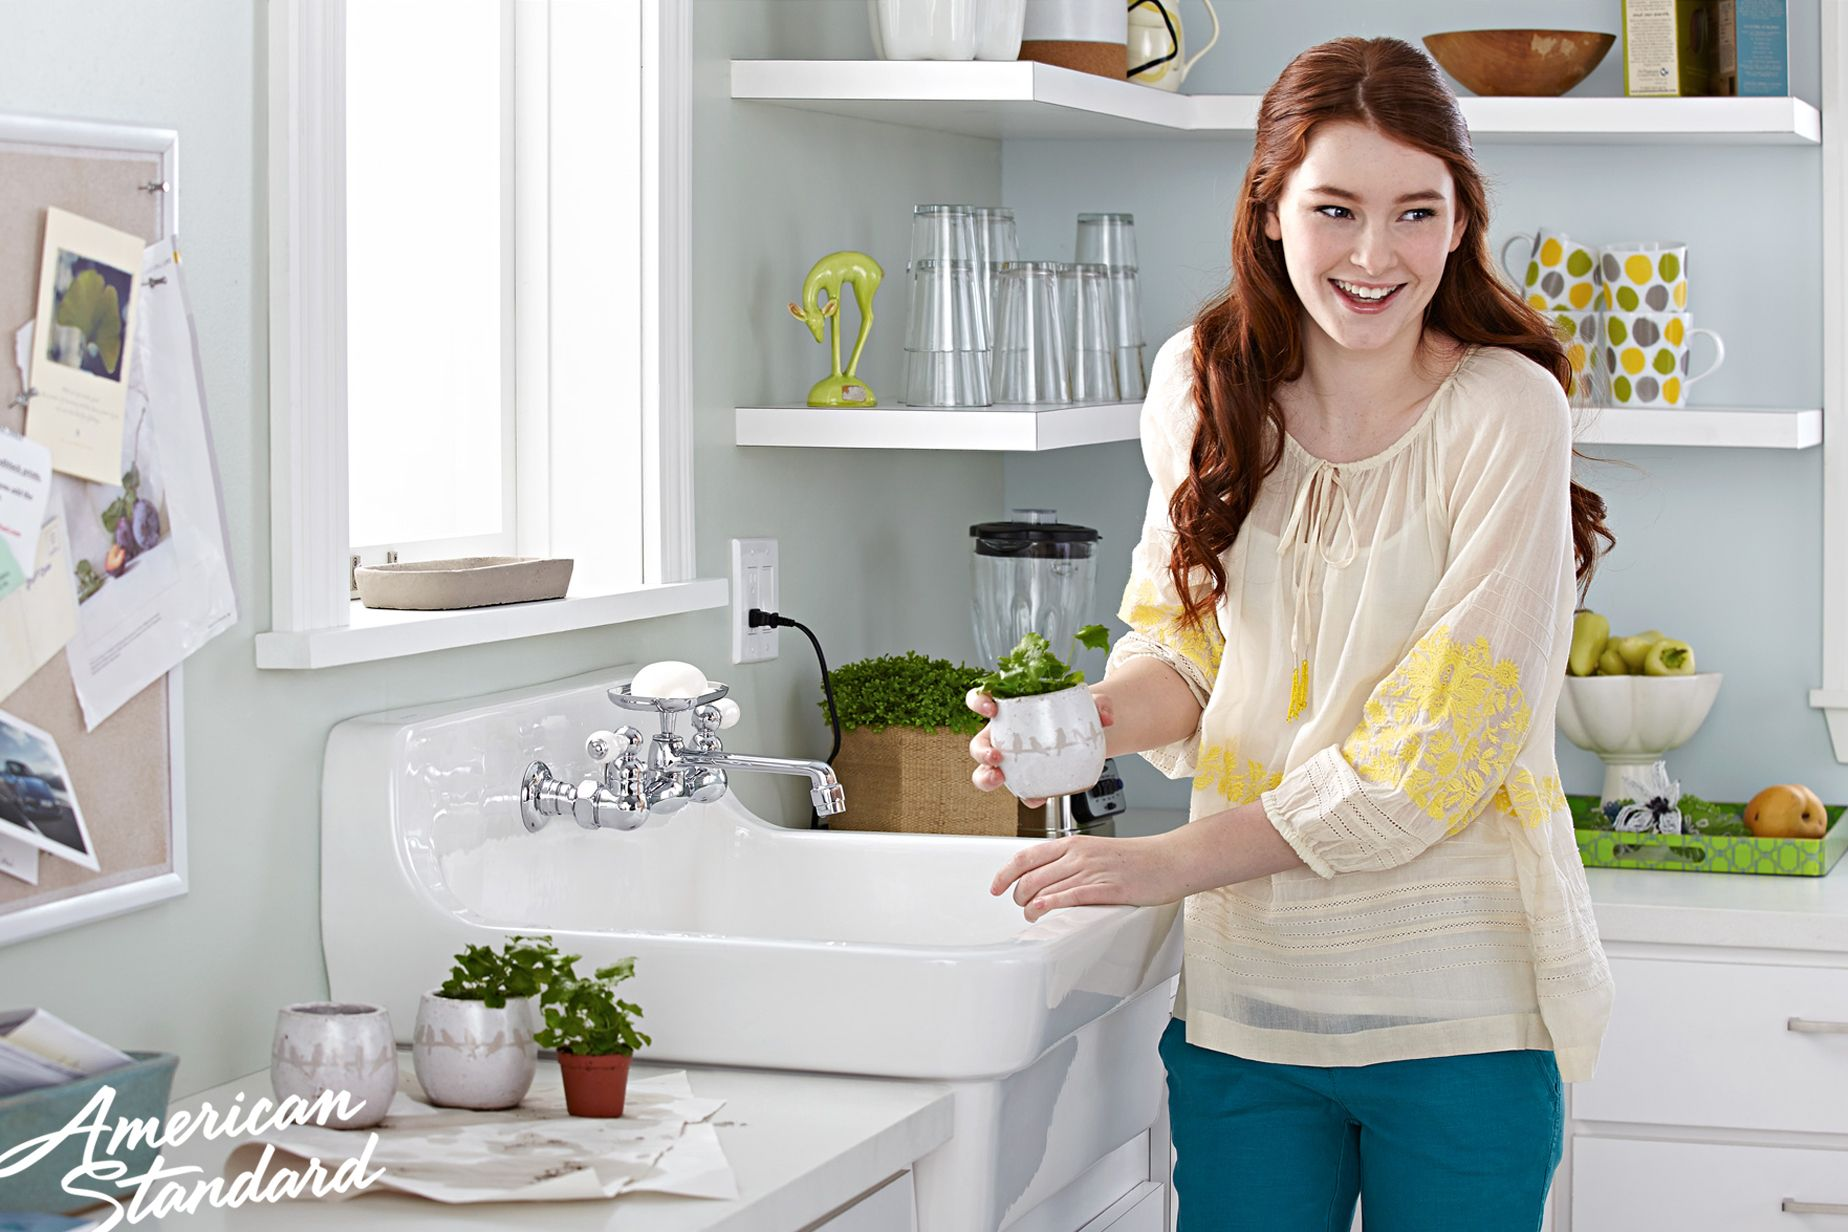 The American Standard Country Kitchen Sink Features Durable Vitreous China,  An Oversized Bowl, Pre